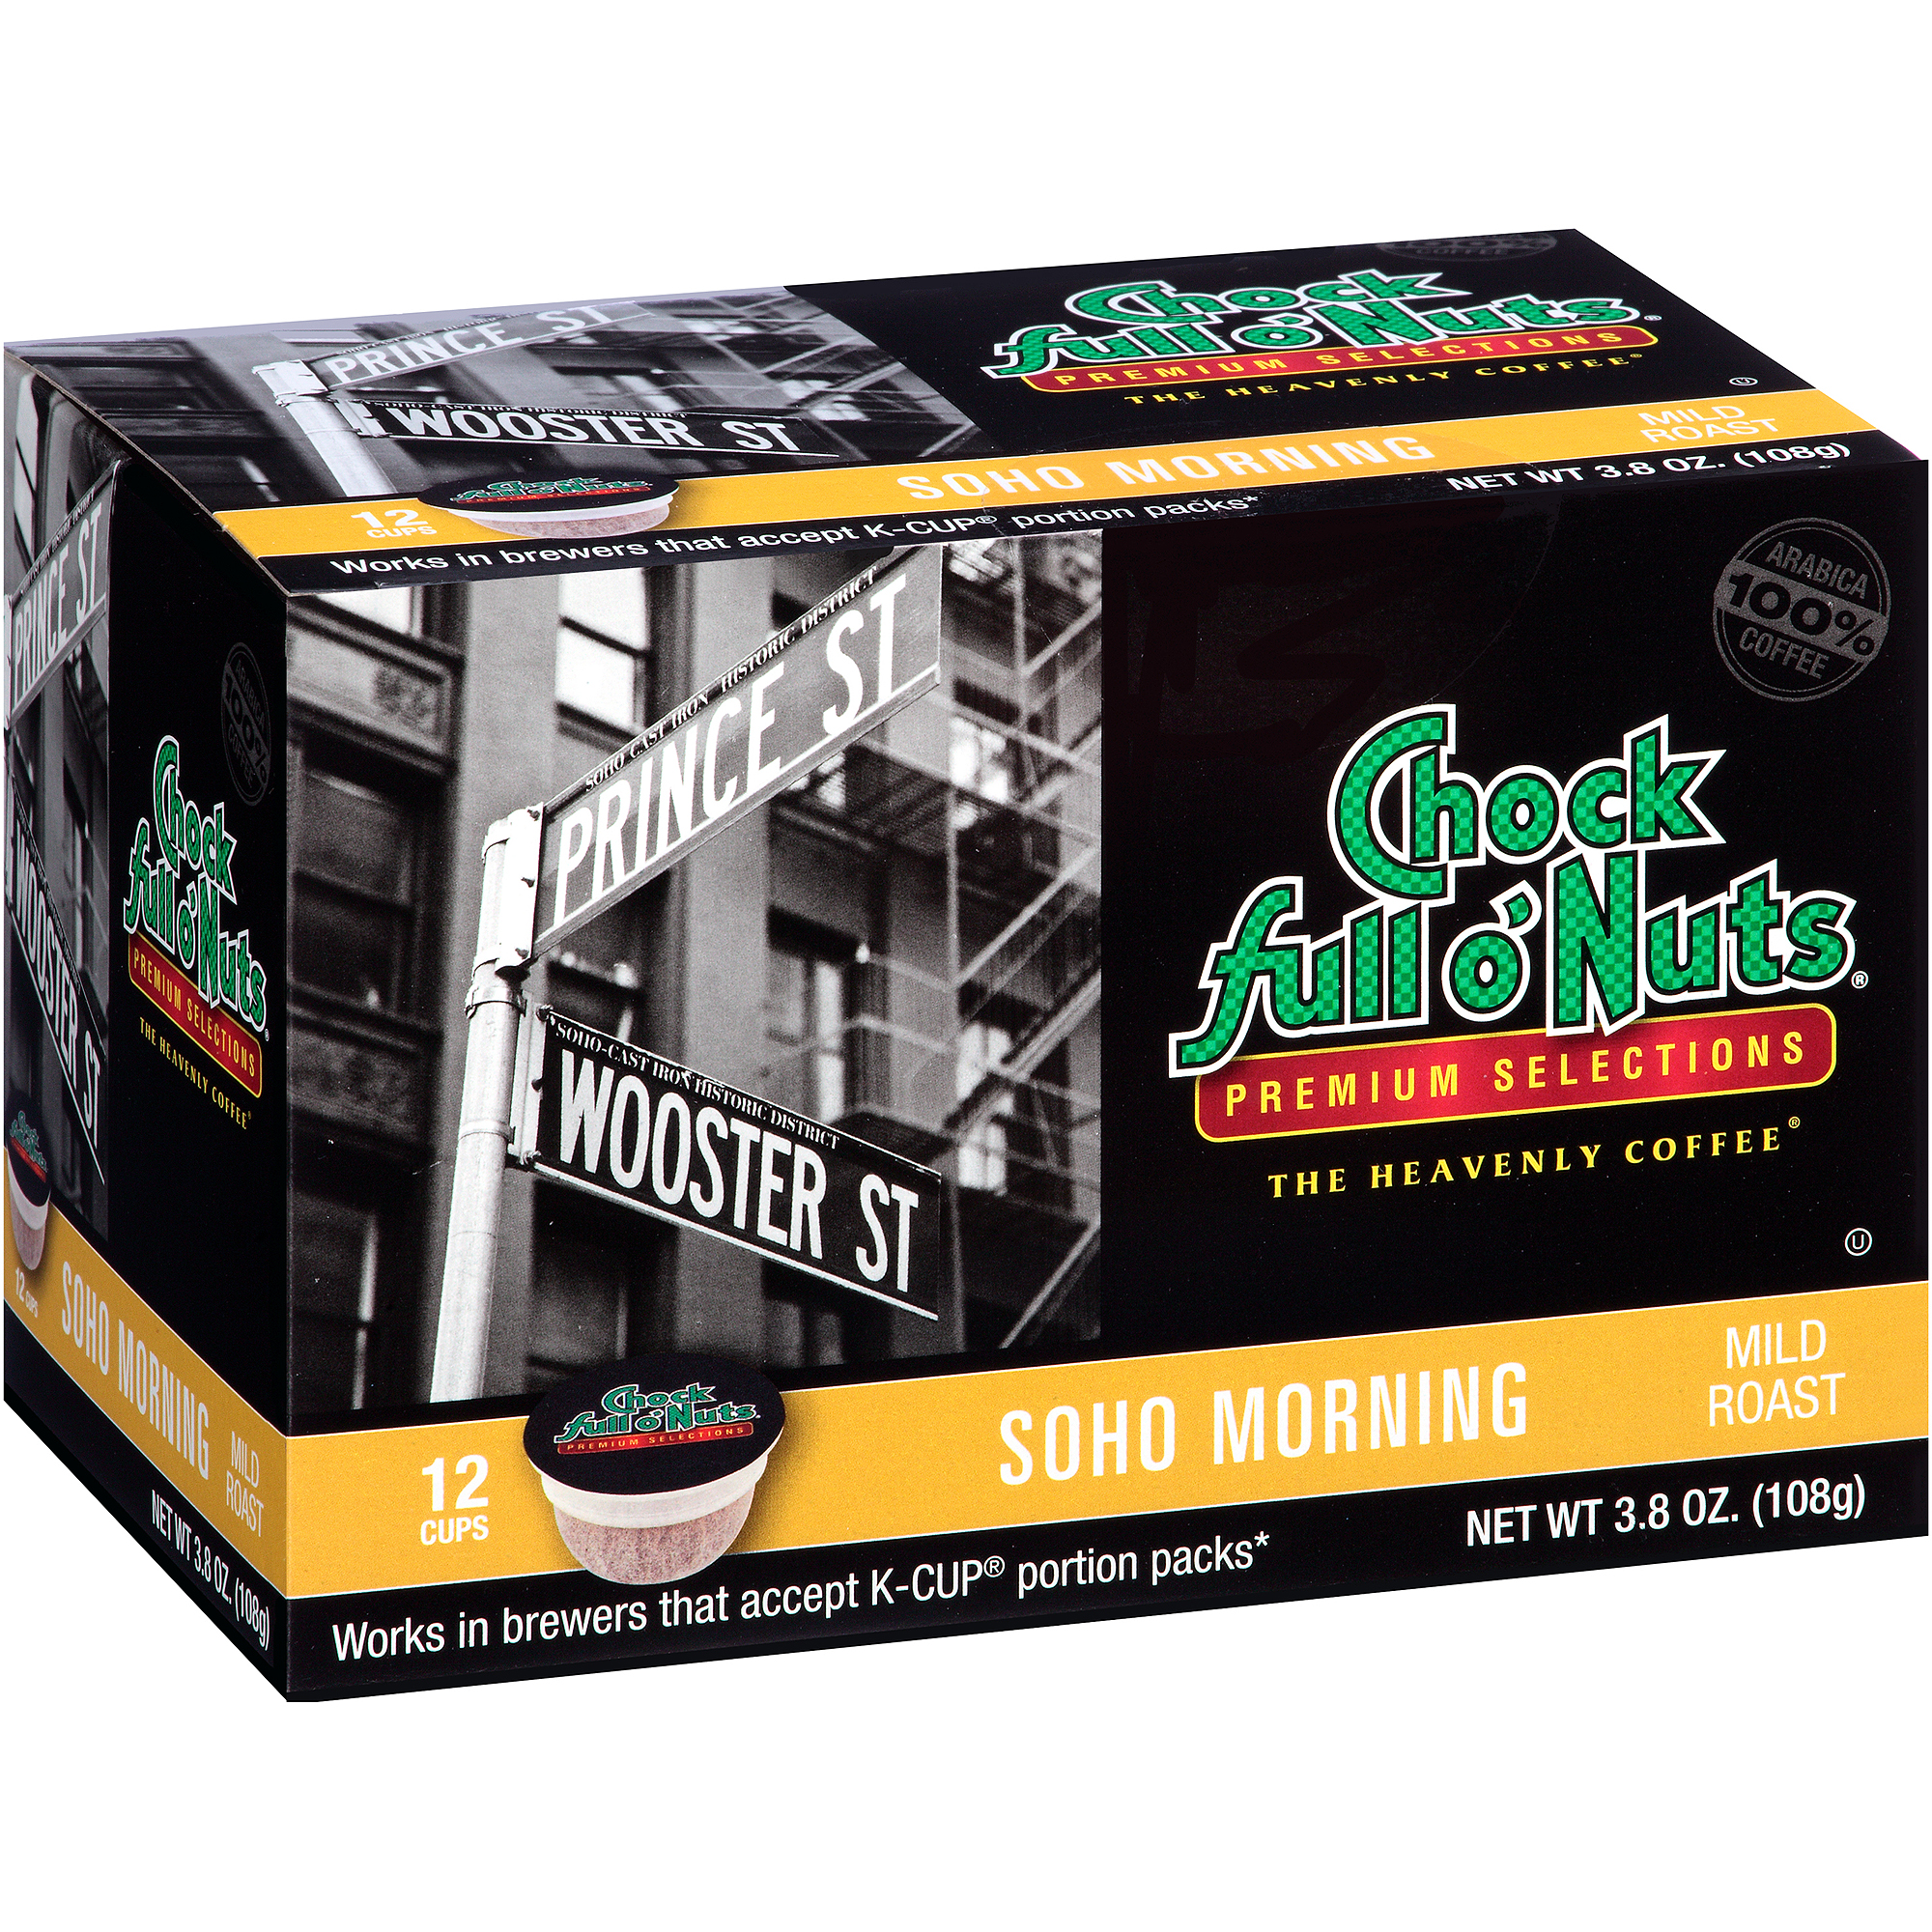 Chock Full o'Nuts Soho Morning Coffee Single Serve Cups, 12 count, 3.8 oz